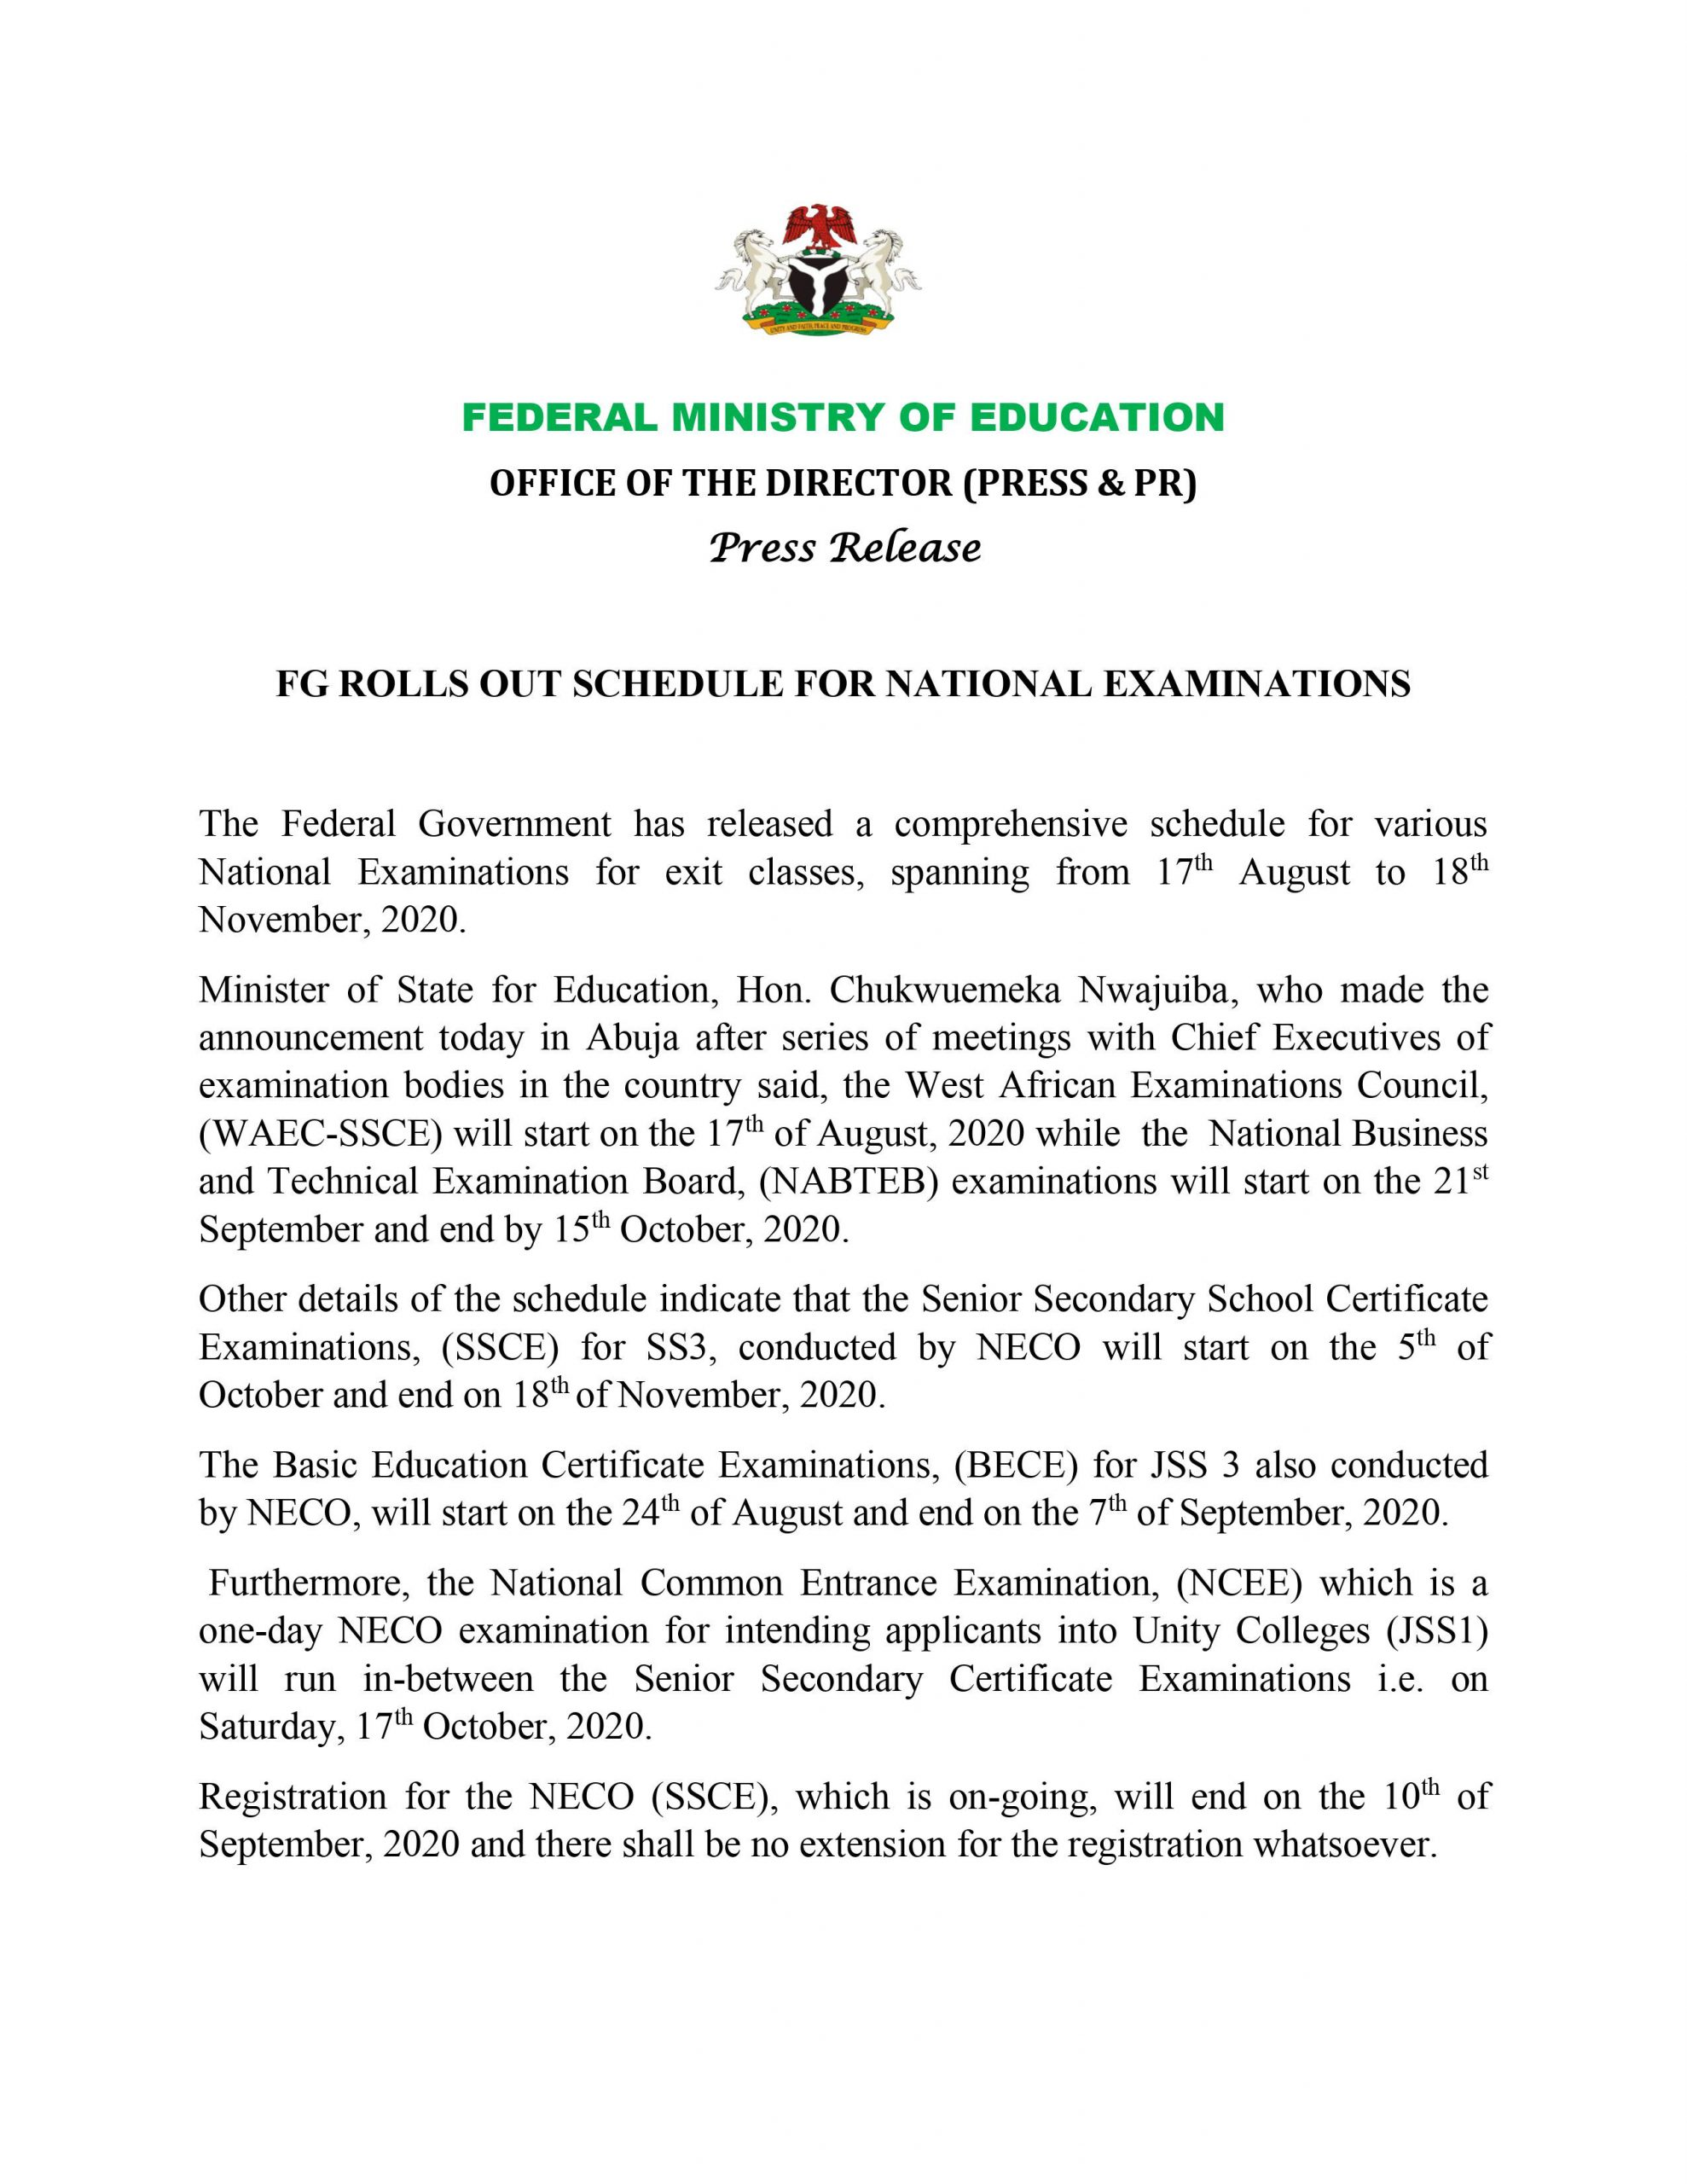 NECO Examinations To Start On October 5, National Common Entrance Examination Fixed For October 17 - FG 5